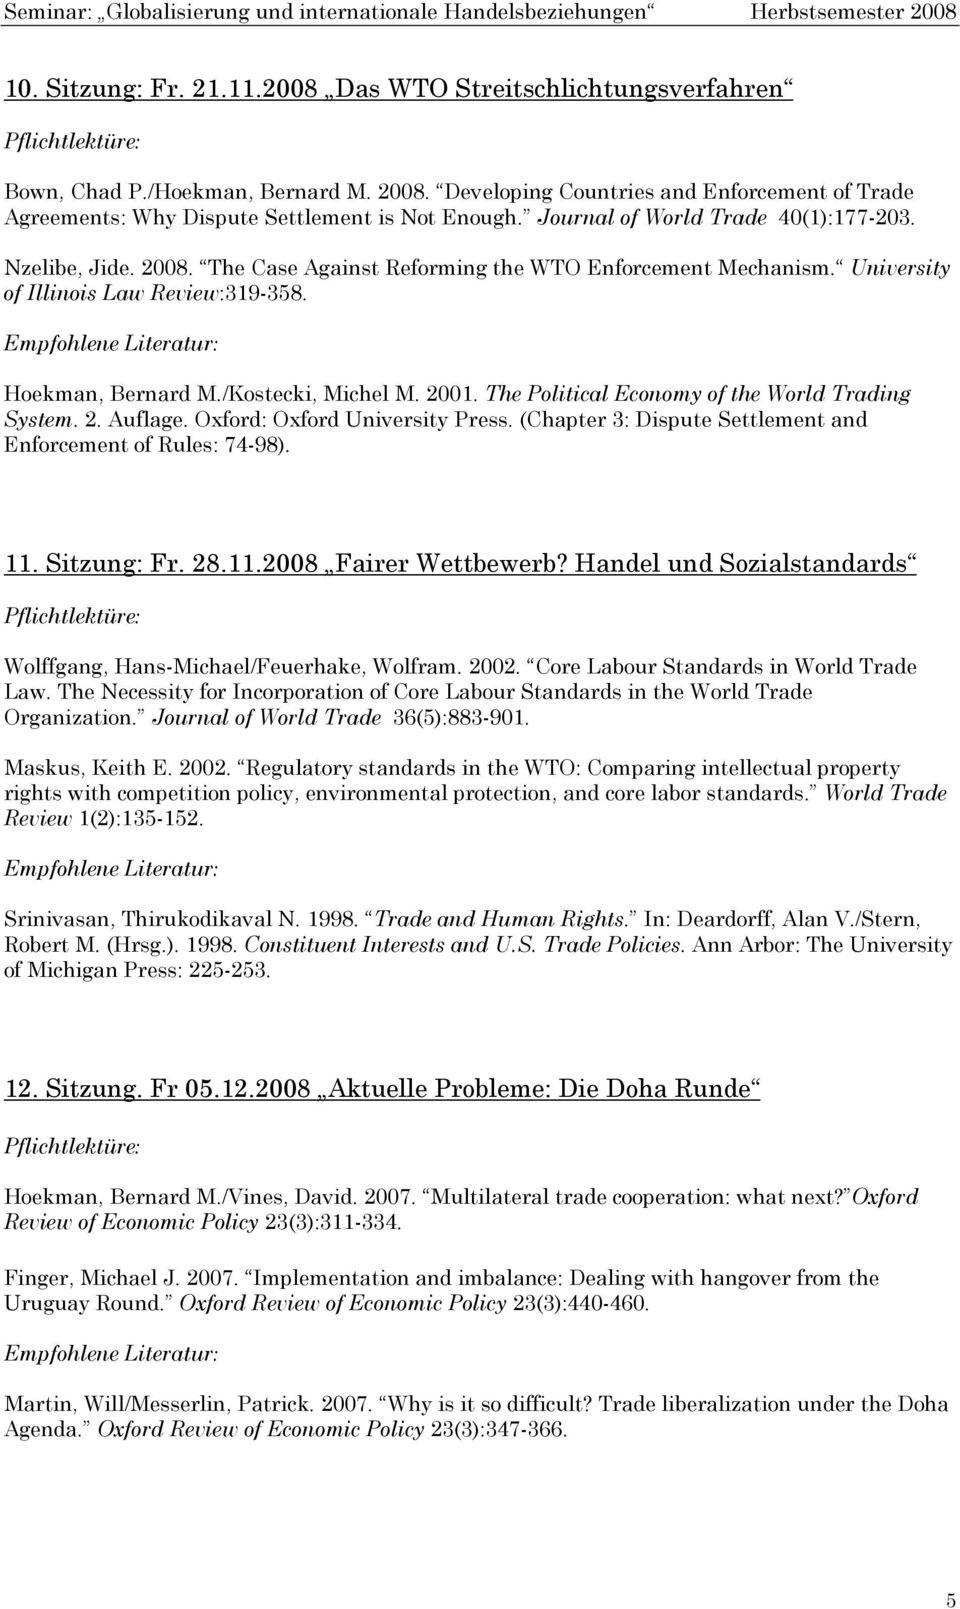 2001. The Political Economy of the World Trading System. 2. Auflage. Oxford: Oxford University Press. (Chapter 3: Dispute Settlement and Enforcement of Rules: 74-98). 11. Sitzung: Fr. 28.11.2008 Fairer Wettbewerb?